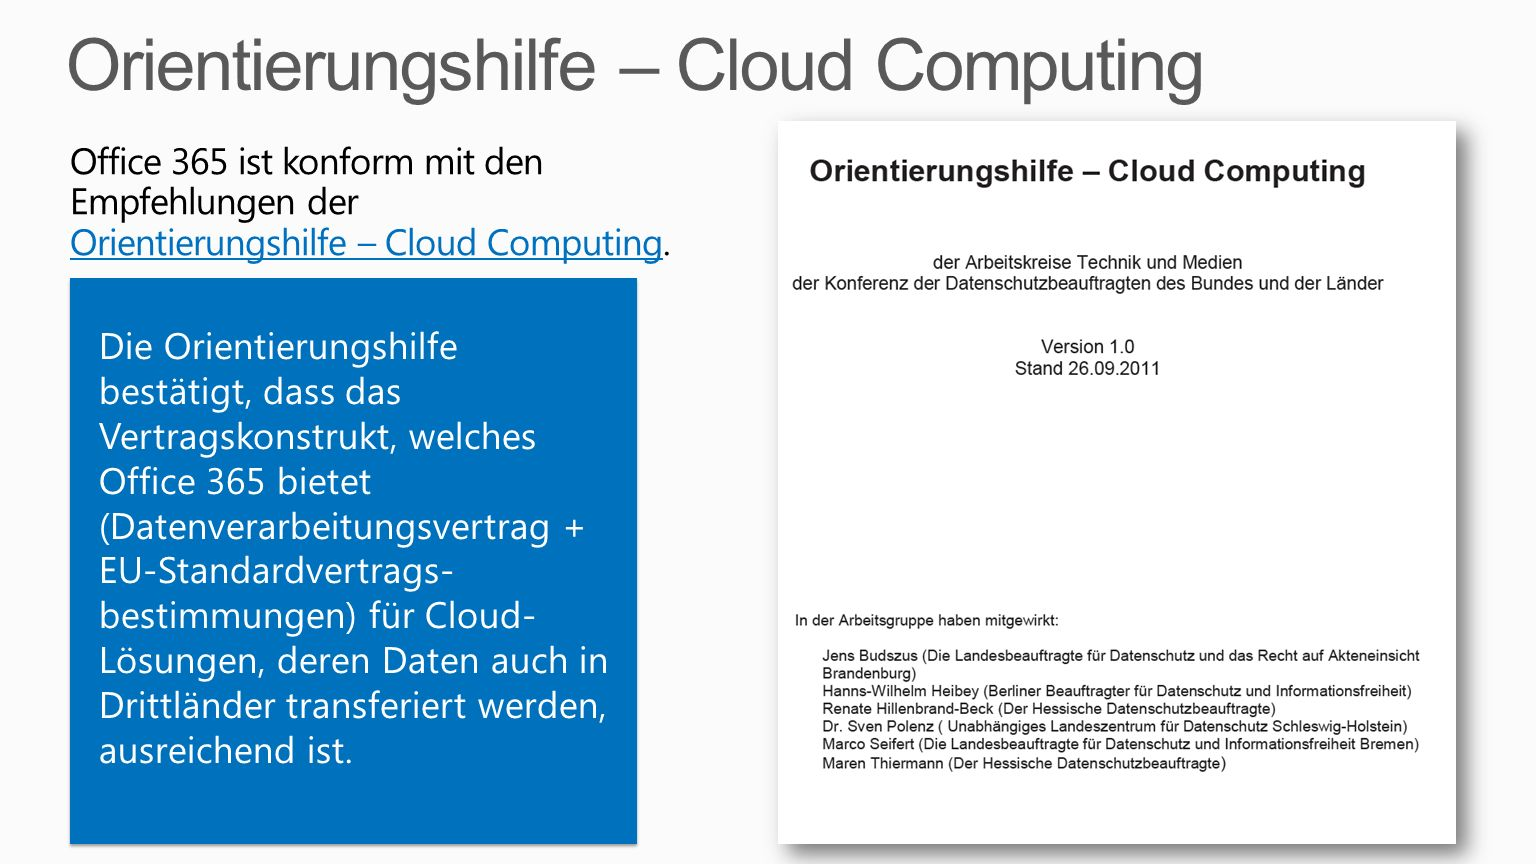 Orientierungshilfe – Cloud Computing